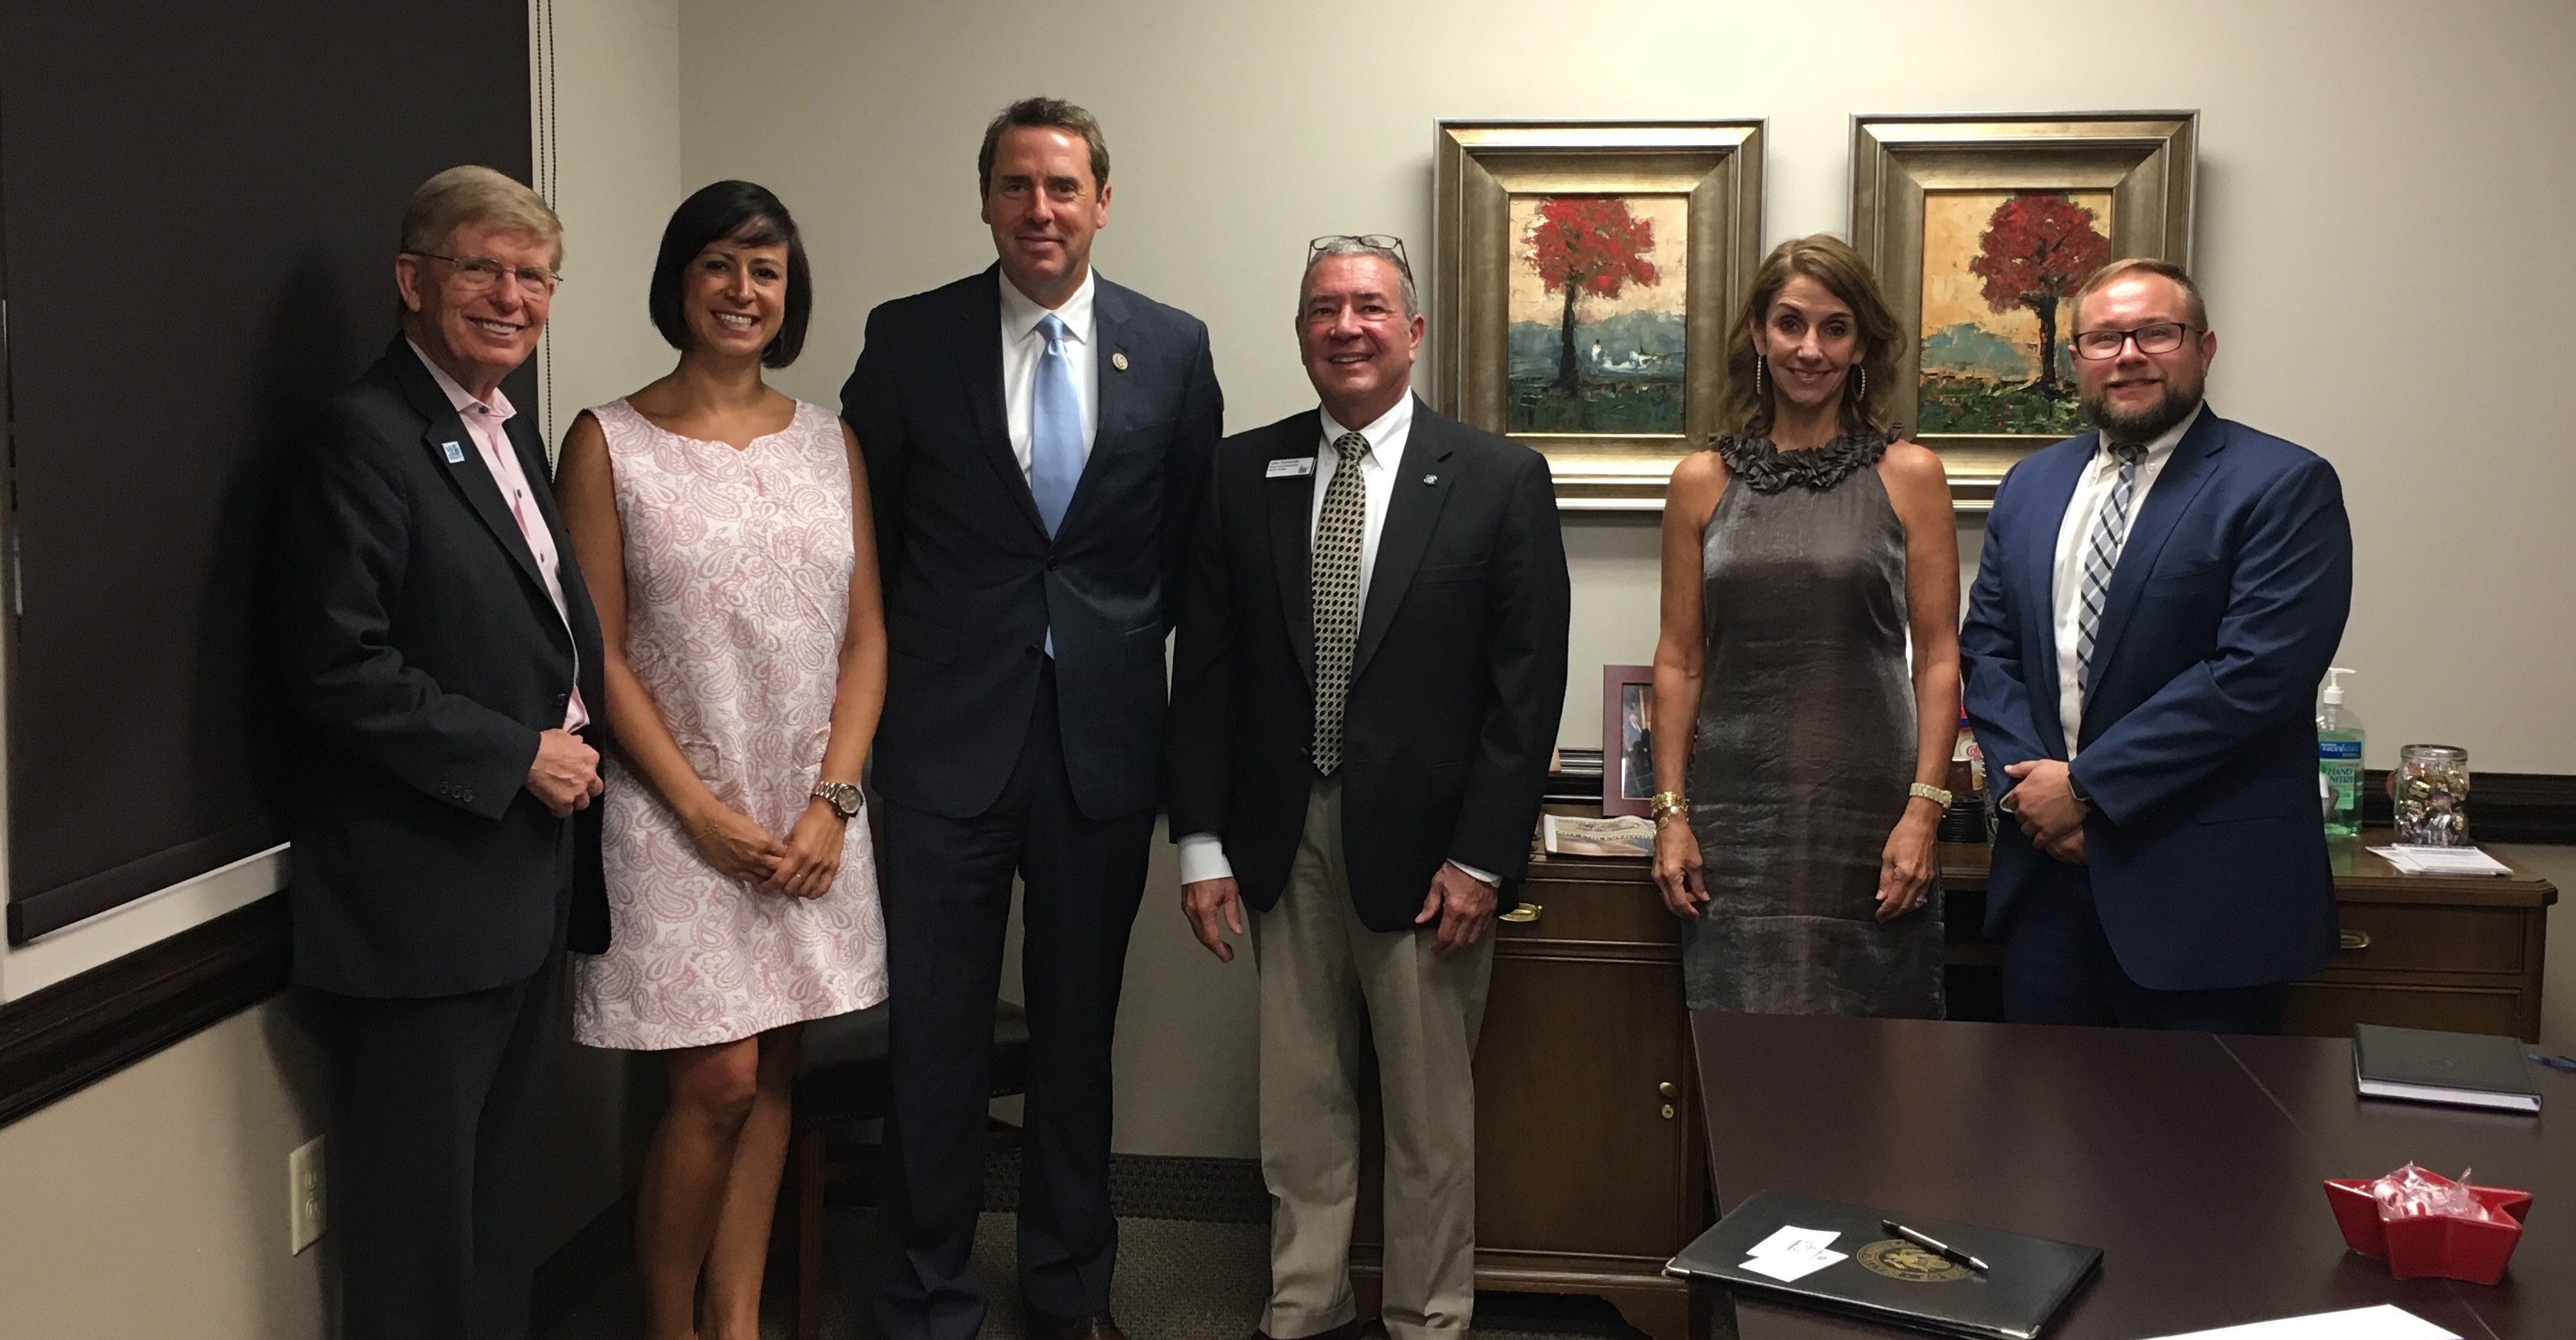 The We Work For Health campaign meets regularly with members of Congress to discuss important healthcare issues. Above, WWFH partners, NC State Grange and American Cancer Society- Cancer Action Network, meet with Congressman Mark Walker (R) in Greensboro.